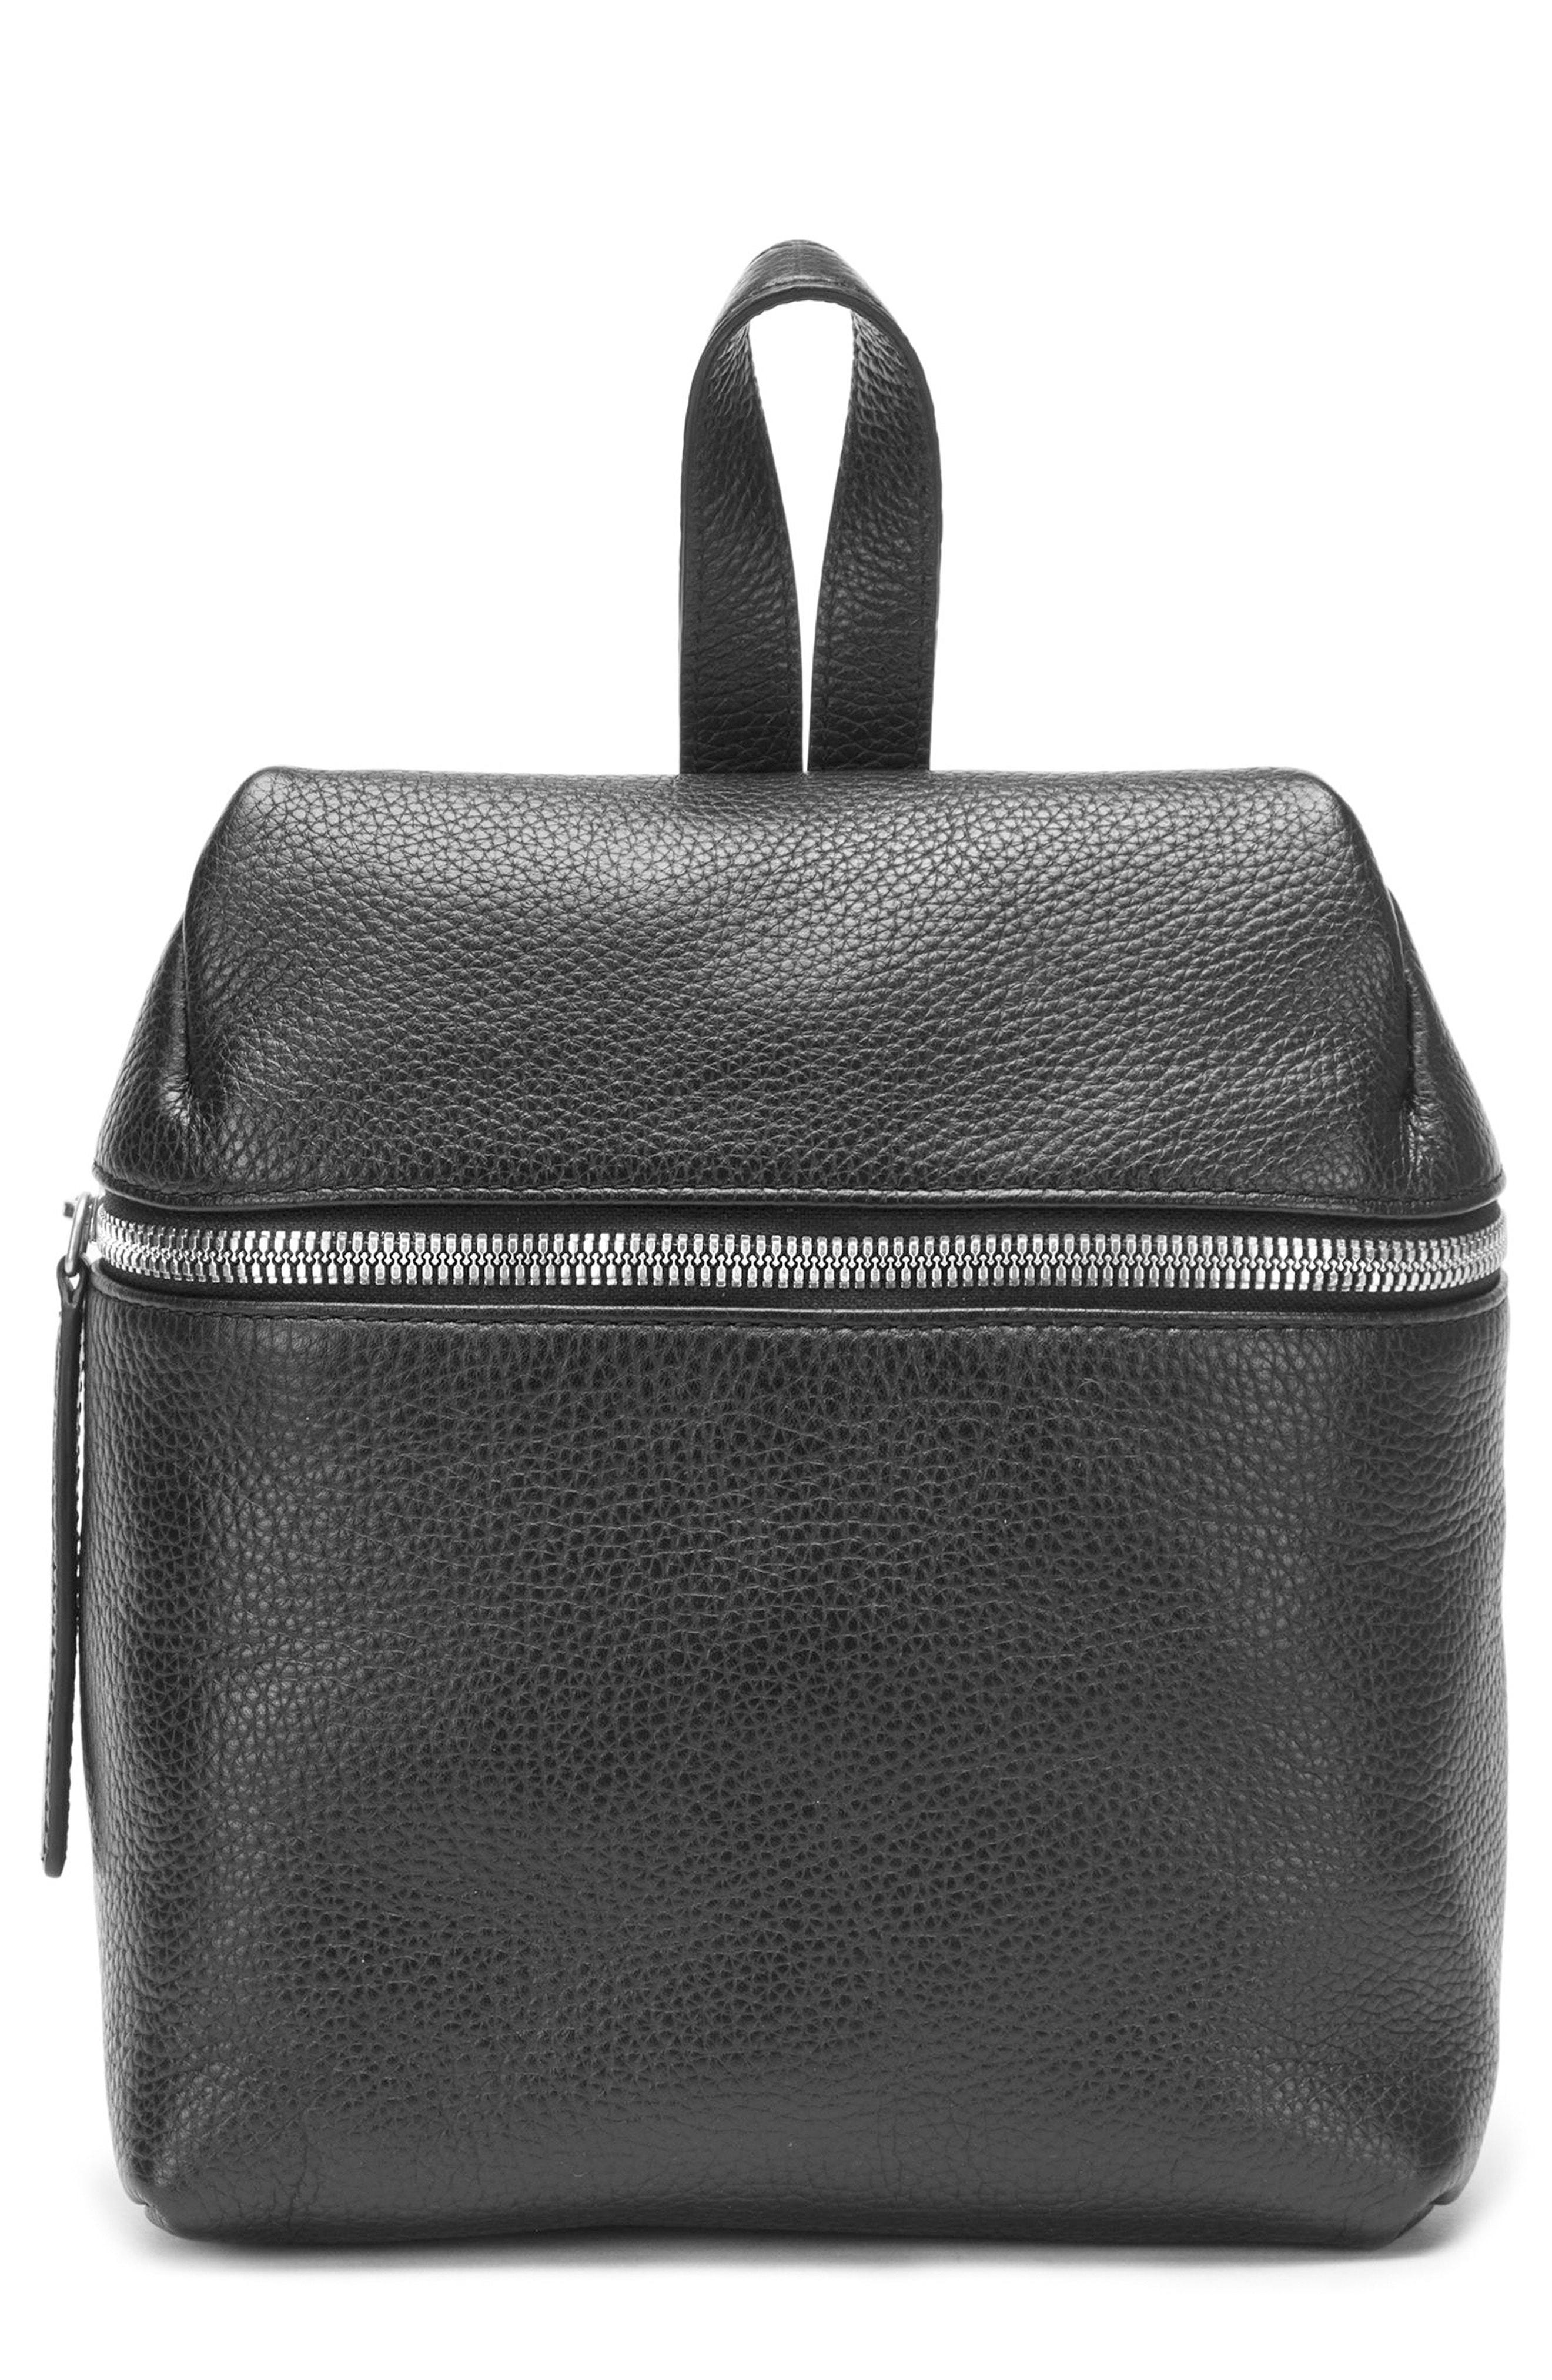 a0e5768170af Kara Small Pebbled Leather Backpack - Black | ModeSens